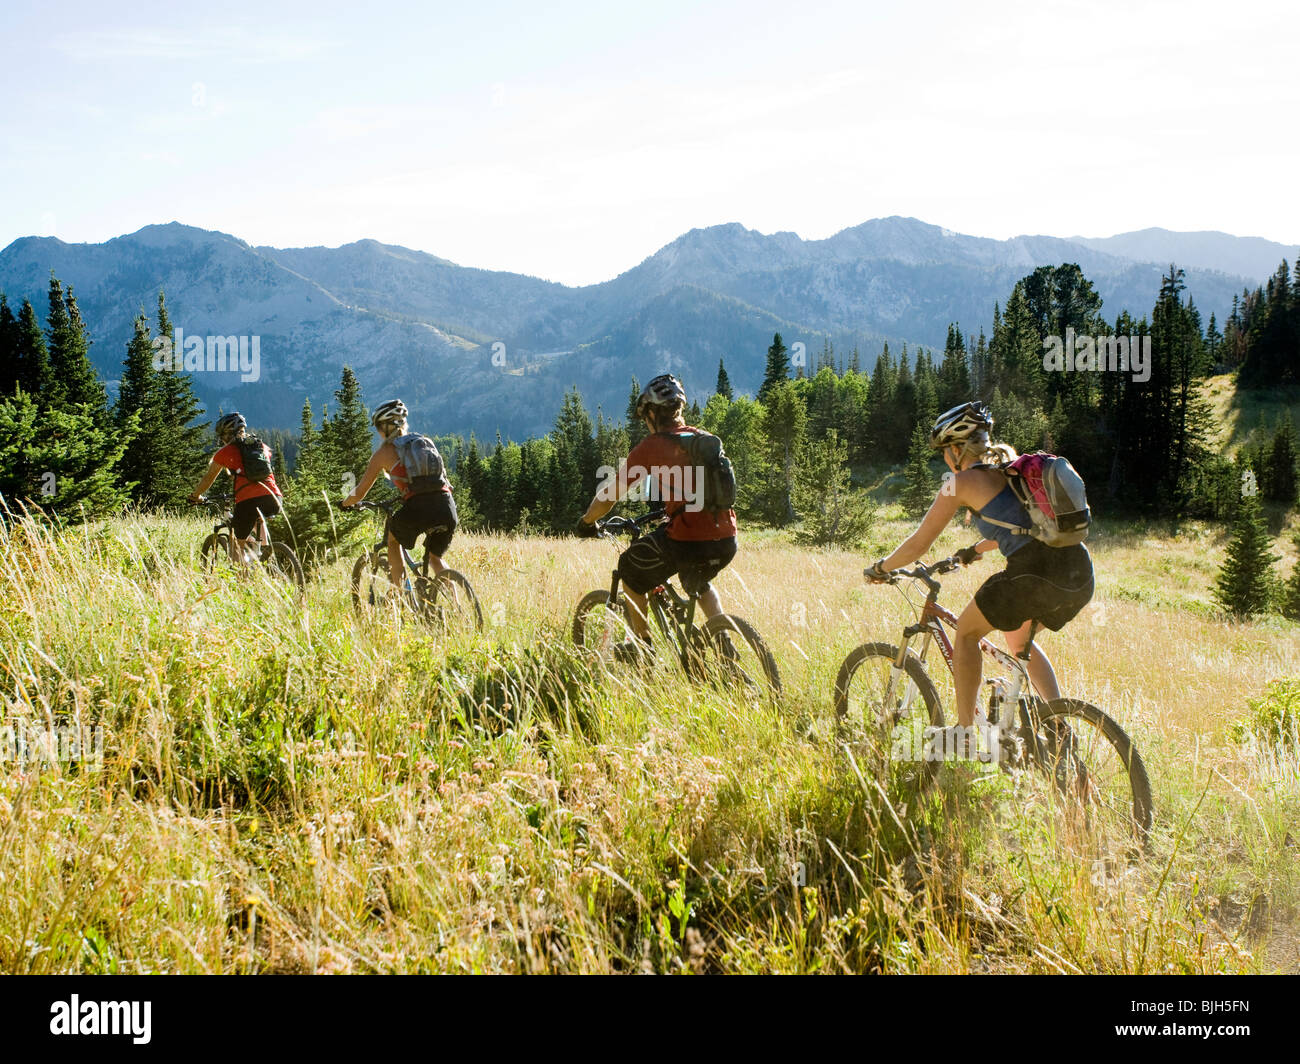 mountain bikers riding down a trail - Stock Image